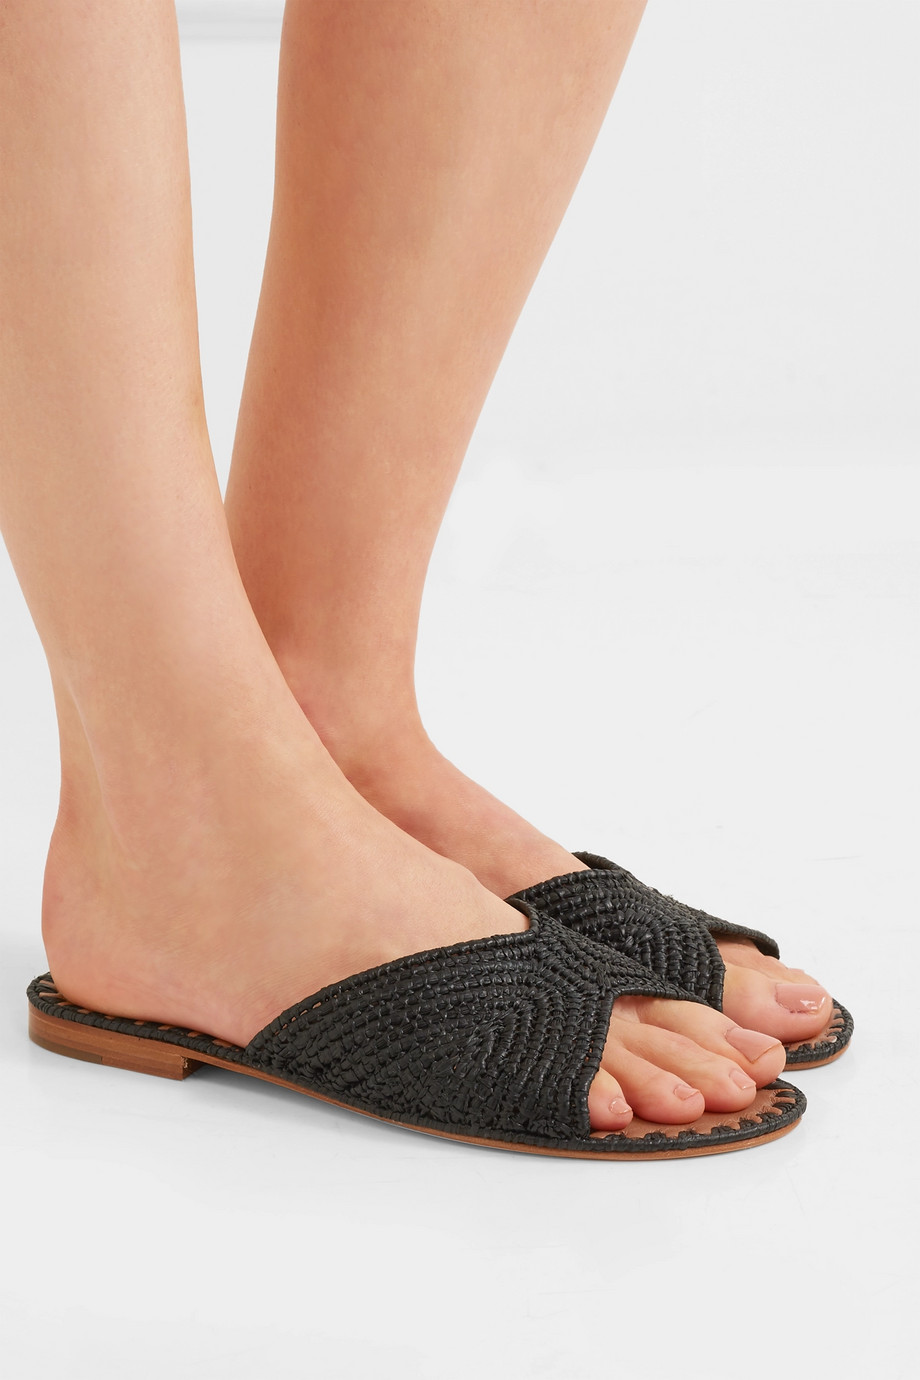 Summer slippers Carrie Forbes buy Summer slippers Carrie Forbes internet shop